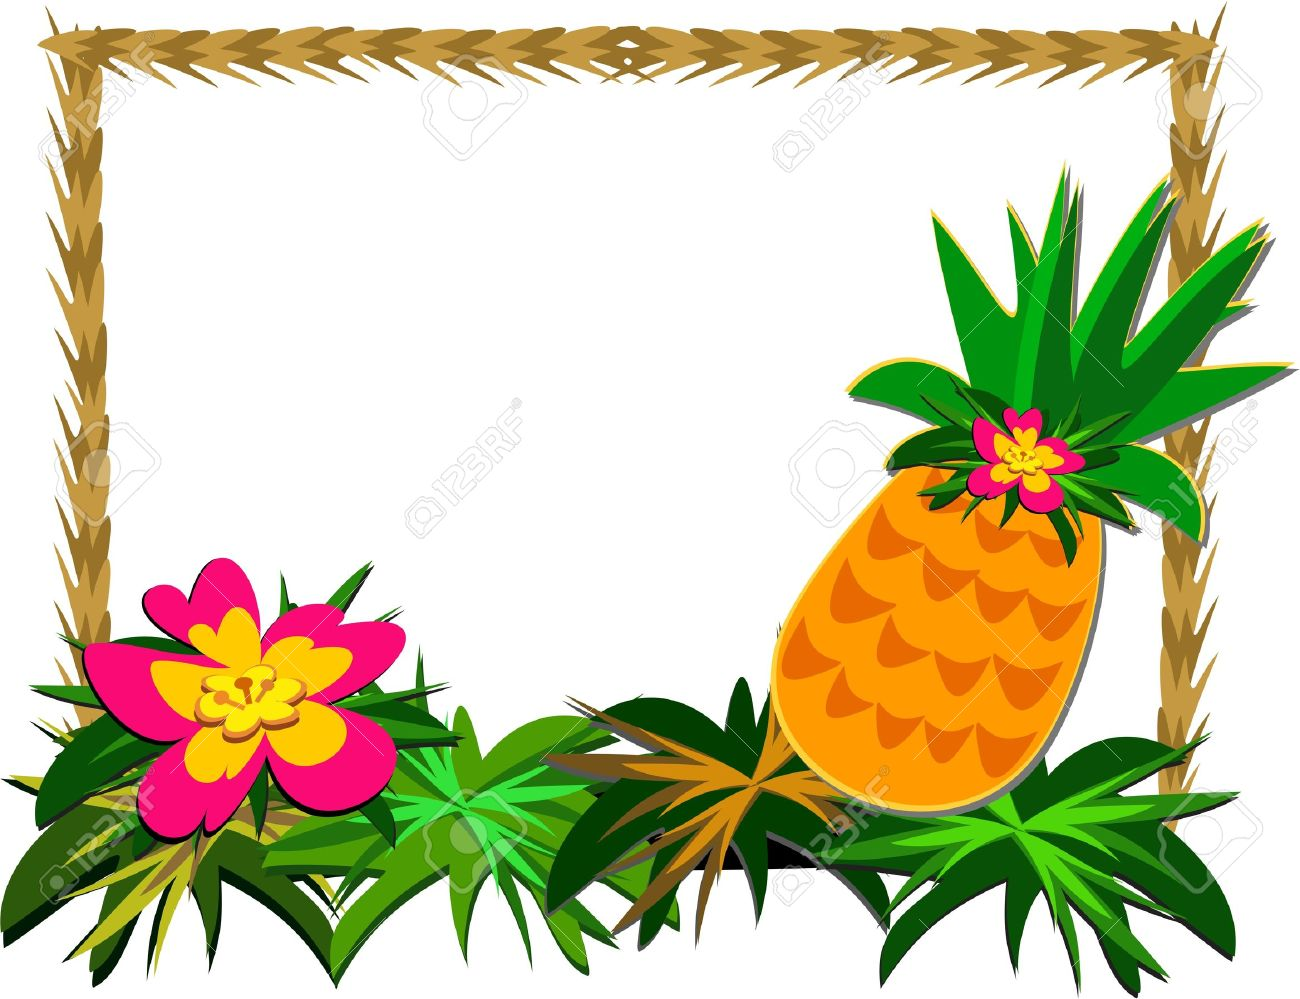 Frame of Tropical Pineapple and Flower Stock Vector - 9270824